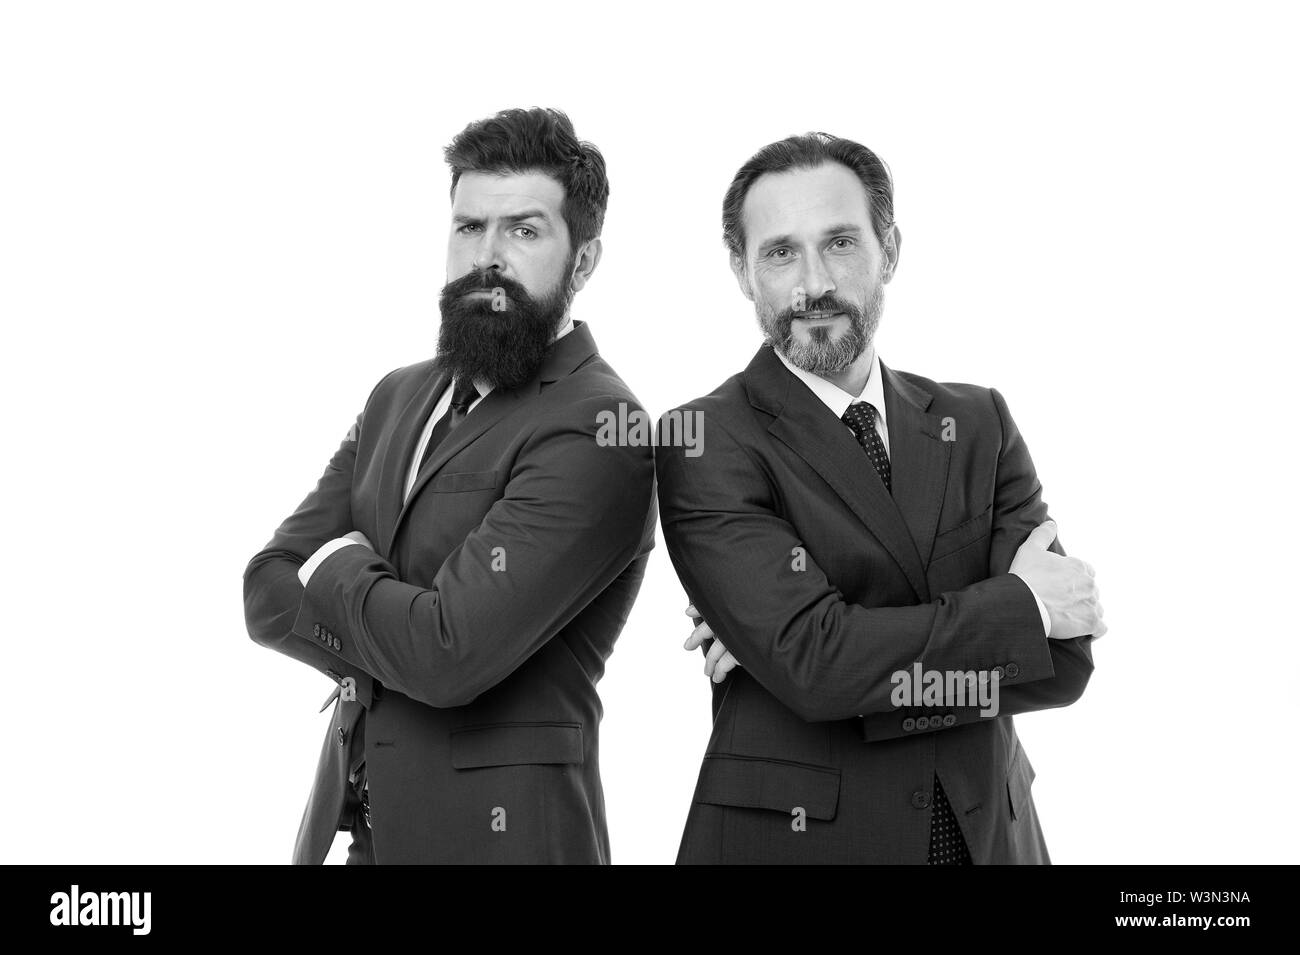 Passionate about their project. Men successful entrepreneurs white background. Business team. Business people concept. Men bearded wear formal suits. Well groomed business men. Partnership teamwork. - Stock Image